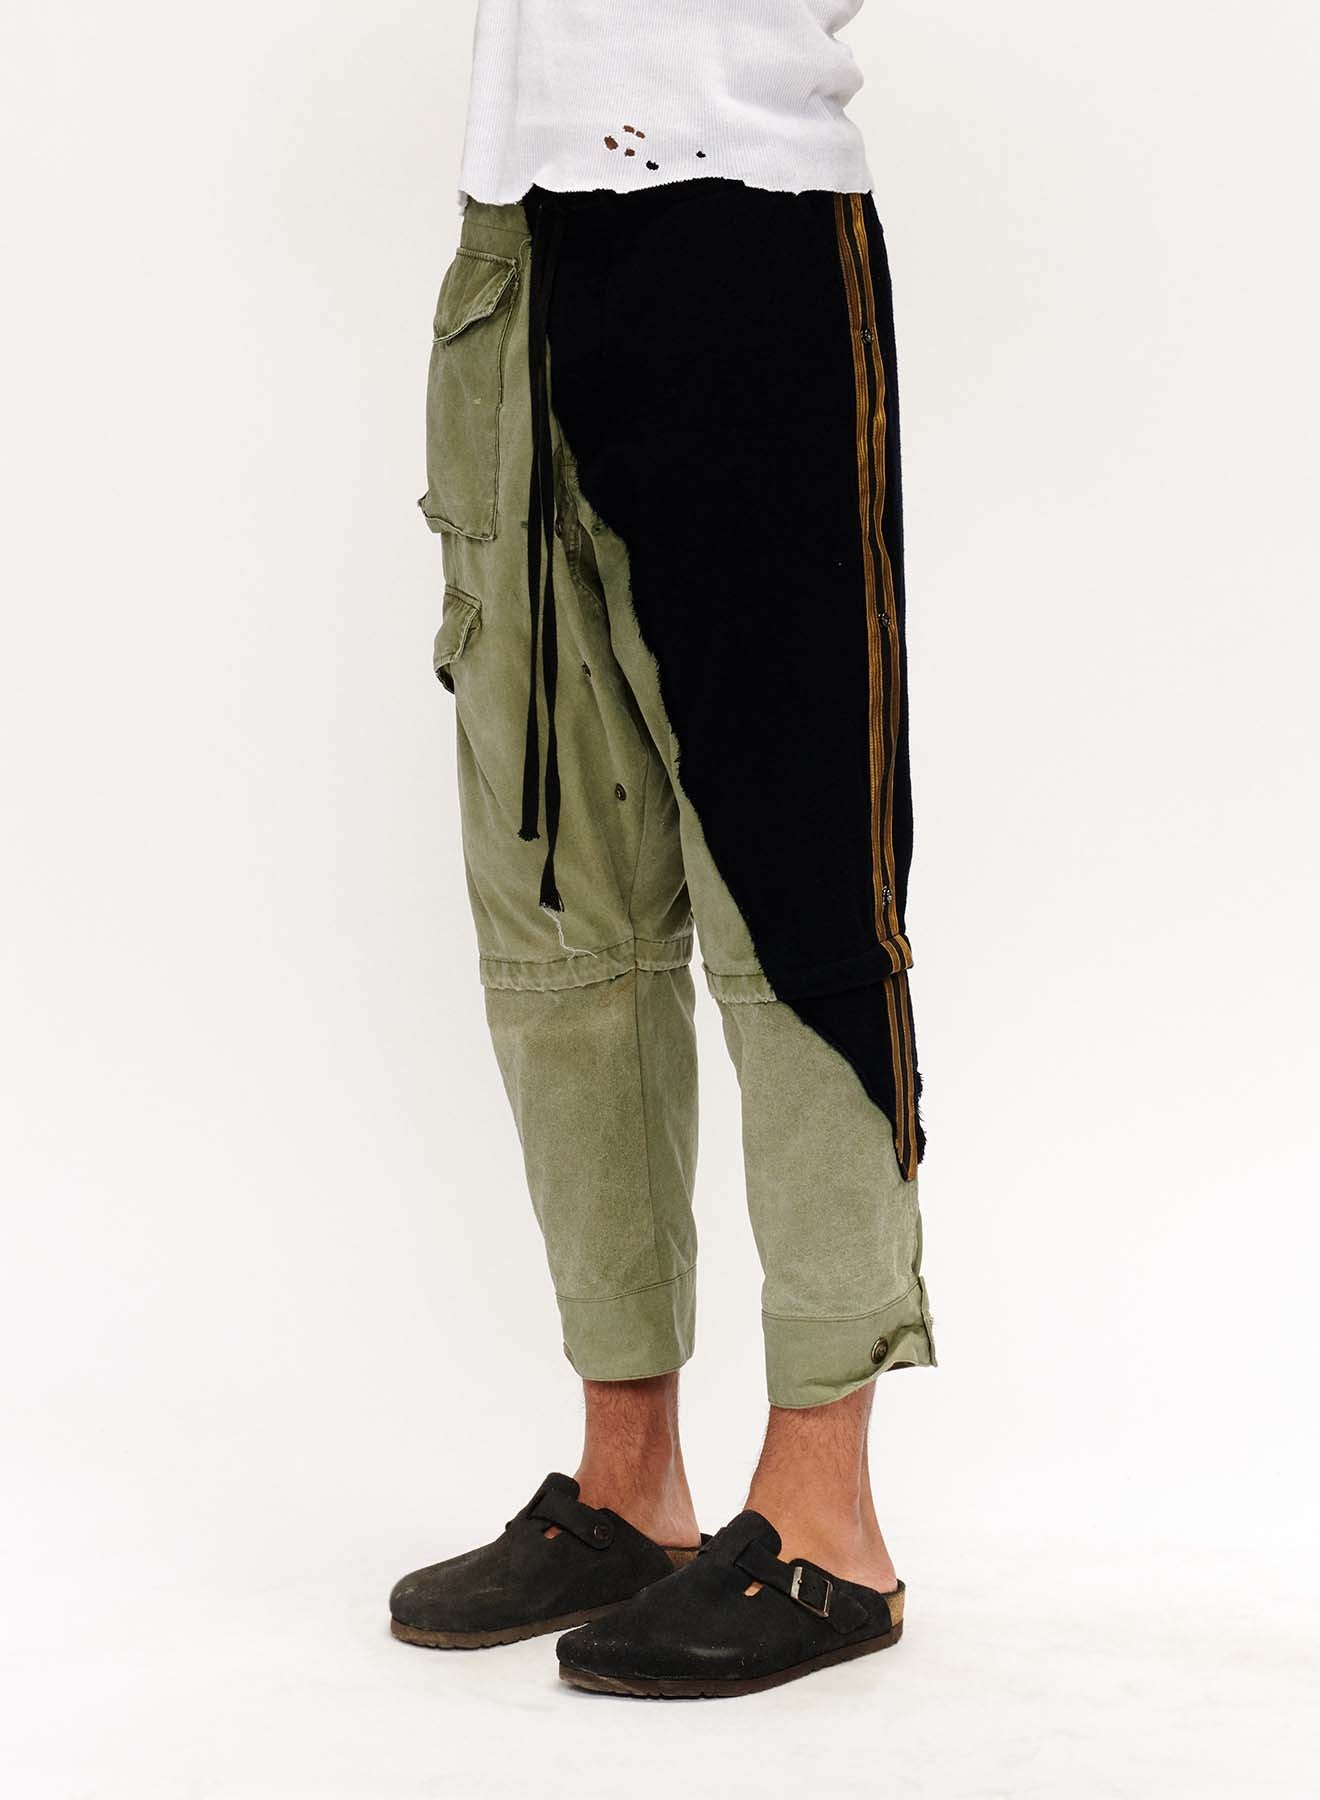 ARMY JACKET / OFFICER 50-50 LOUNGE PANT